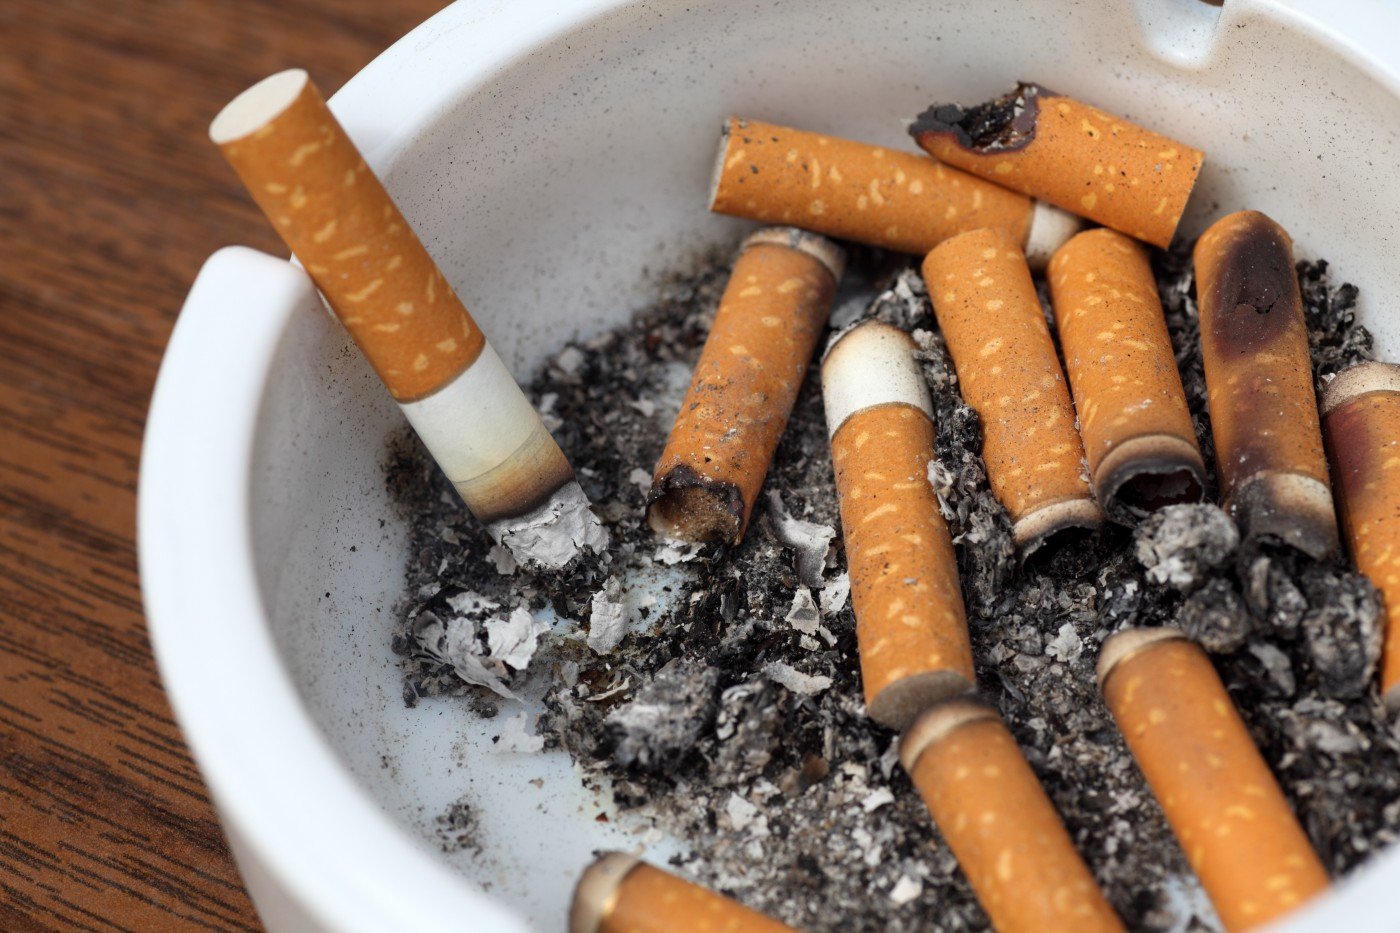 Smoking Can Accelerate Disease Progression in Patients with Multiple Sclerosis